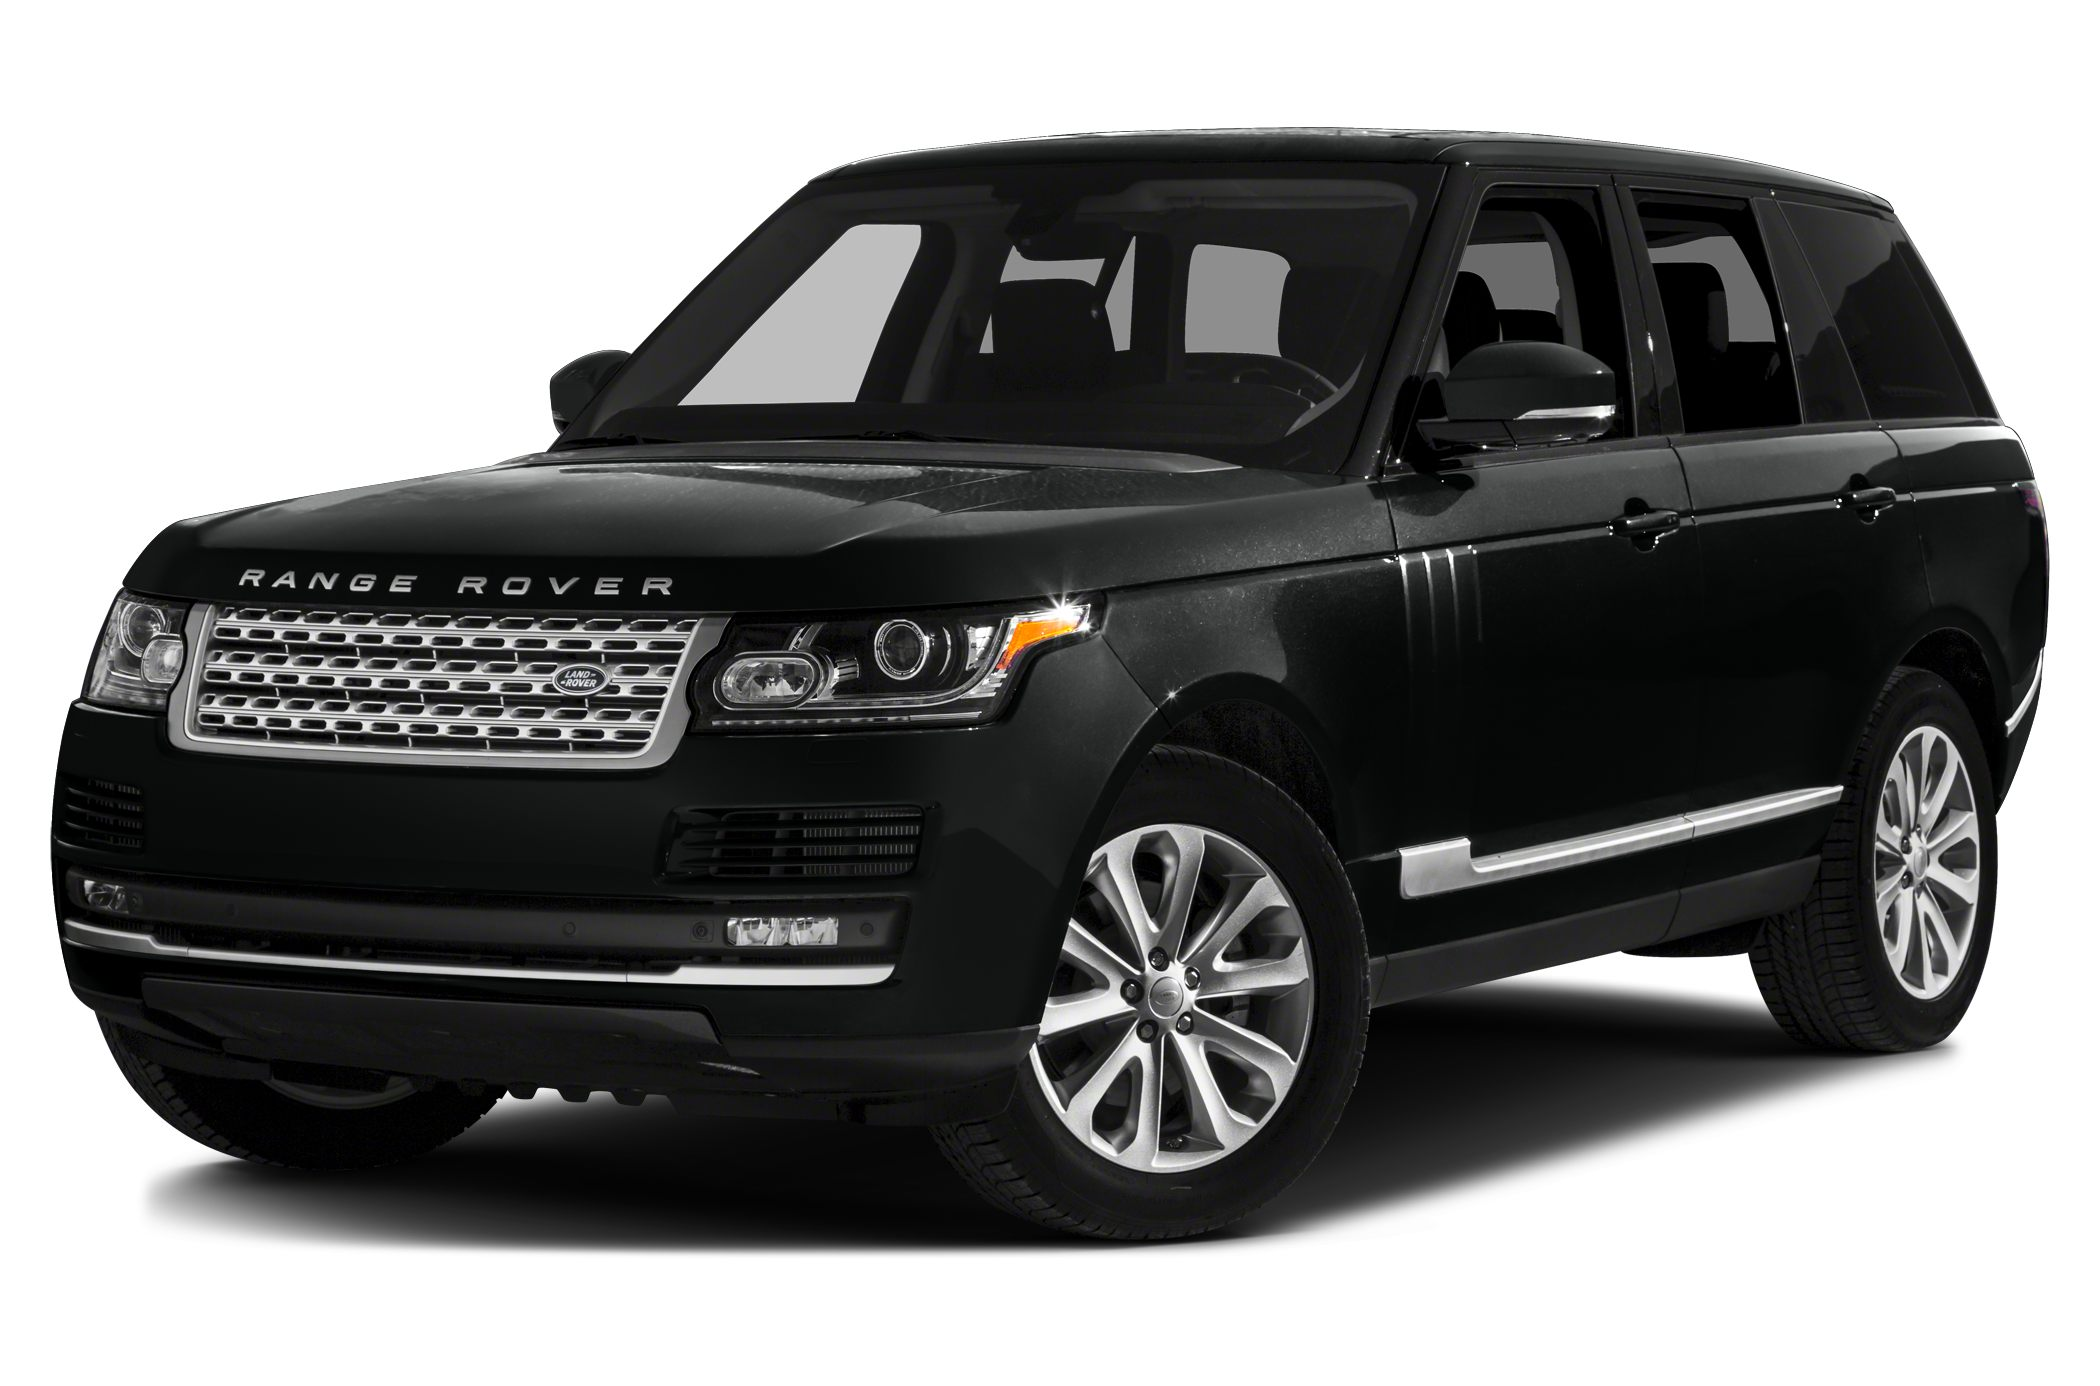 2015 Land Rover Range Rover 3.0L Supercharged SUV for sale in Dallas for $97,991 with 5 miles